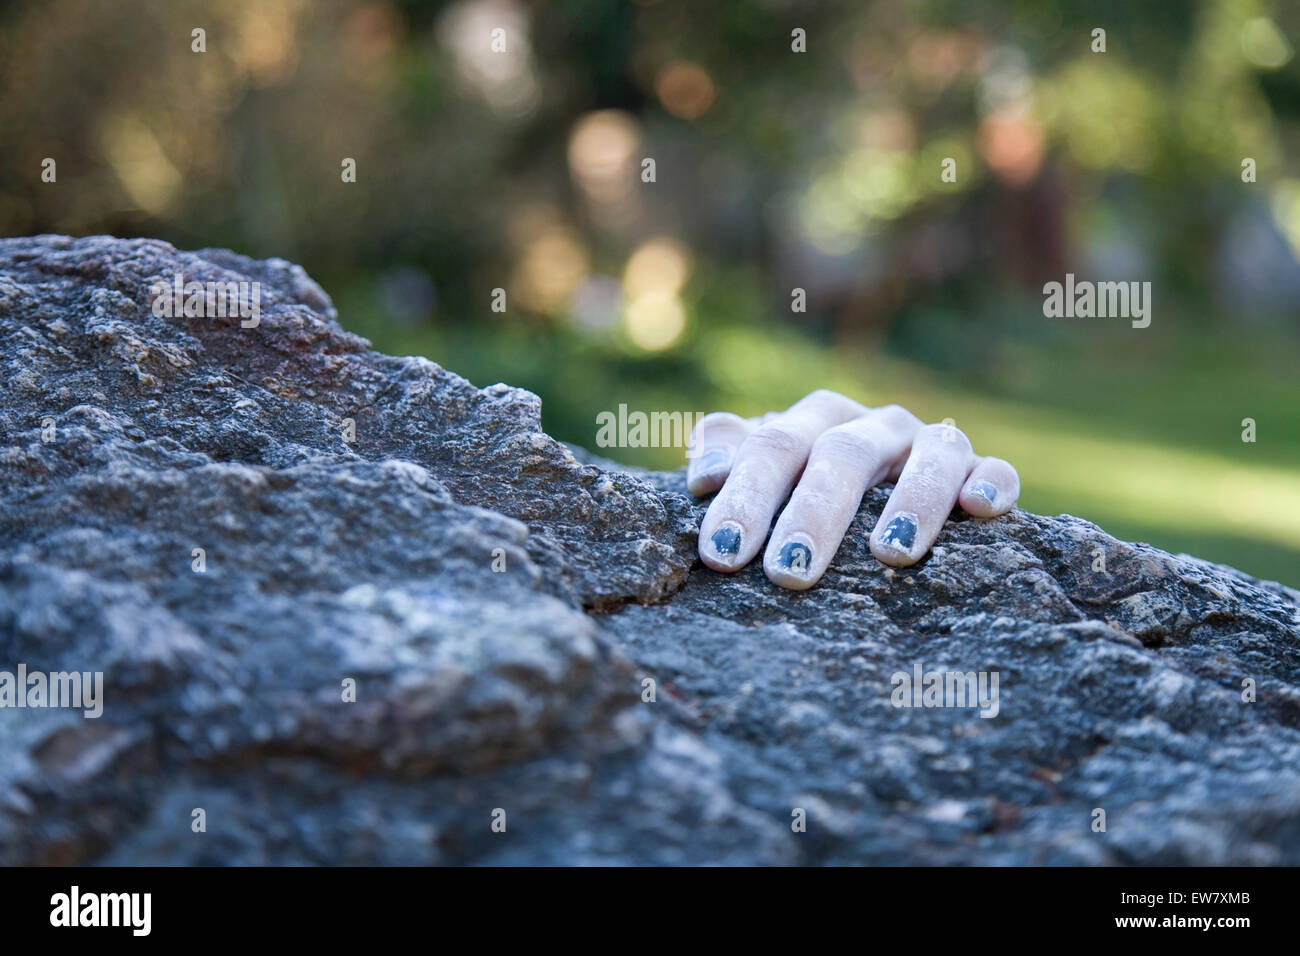 A climber's hand appears at the edge of a precipice during a bouldering session at Indian Rock in Berkeley, - Stock Image